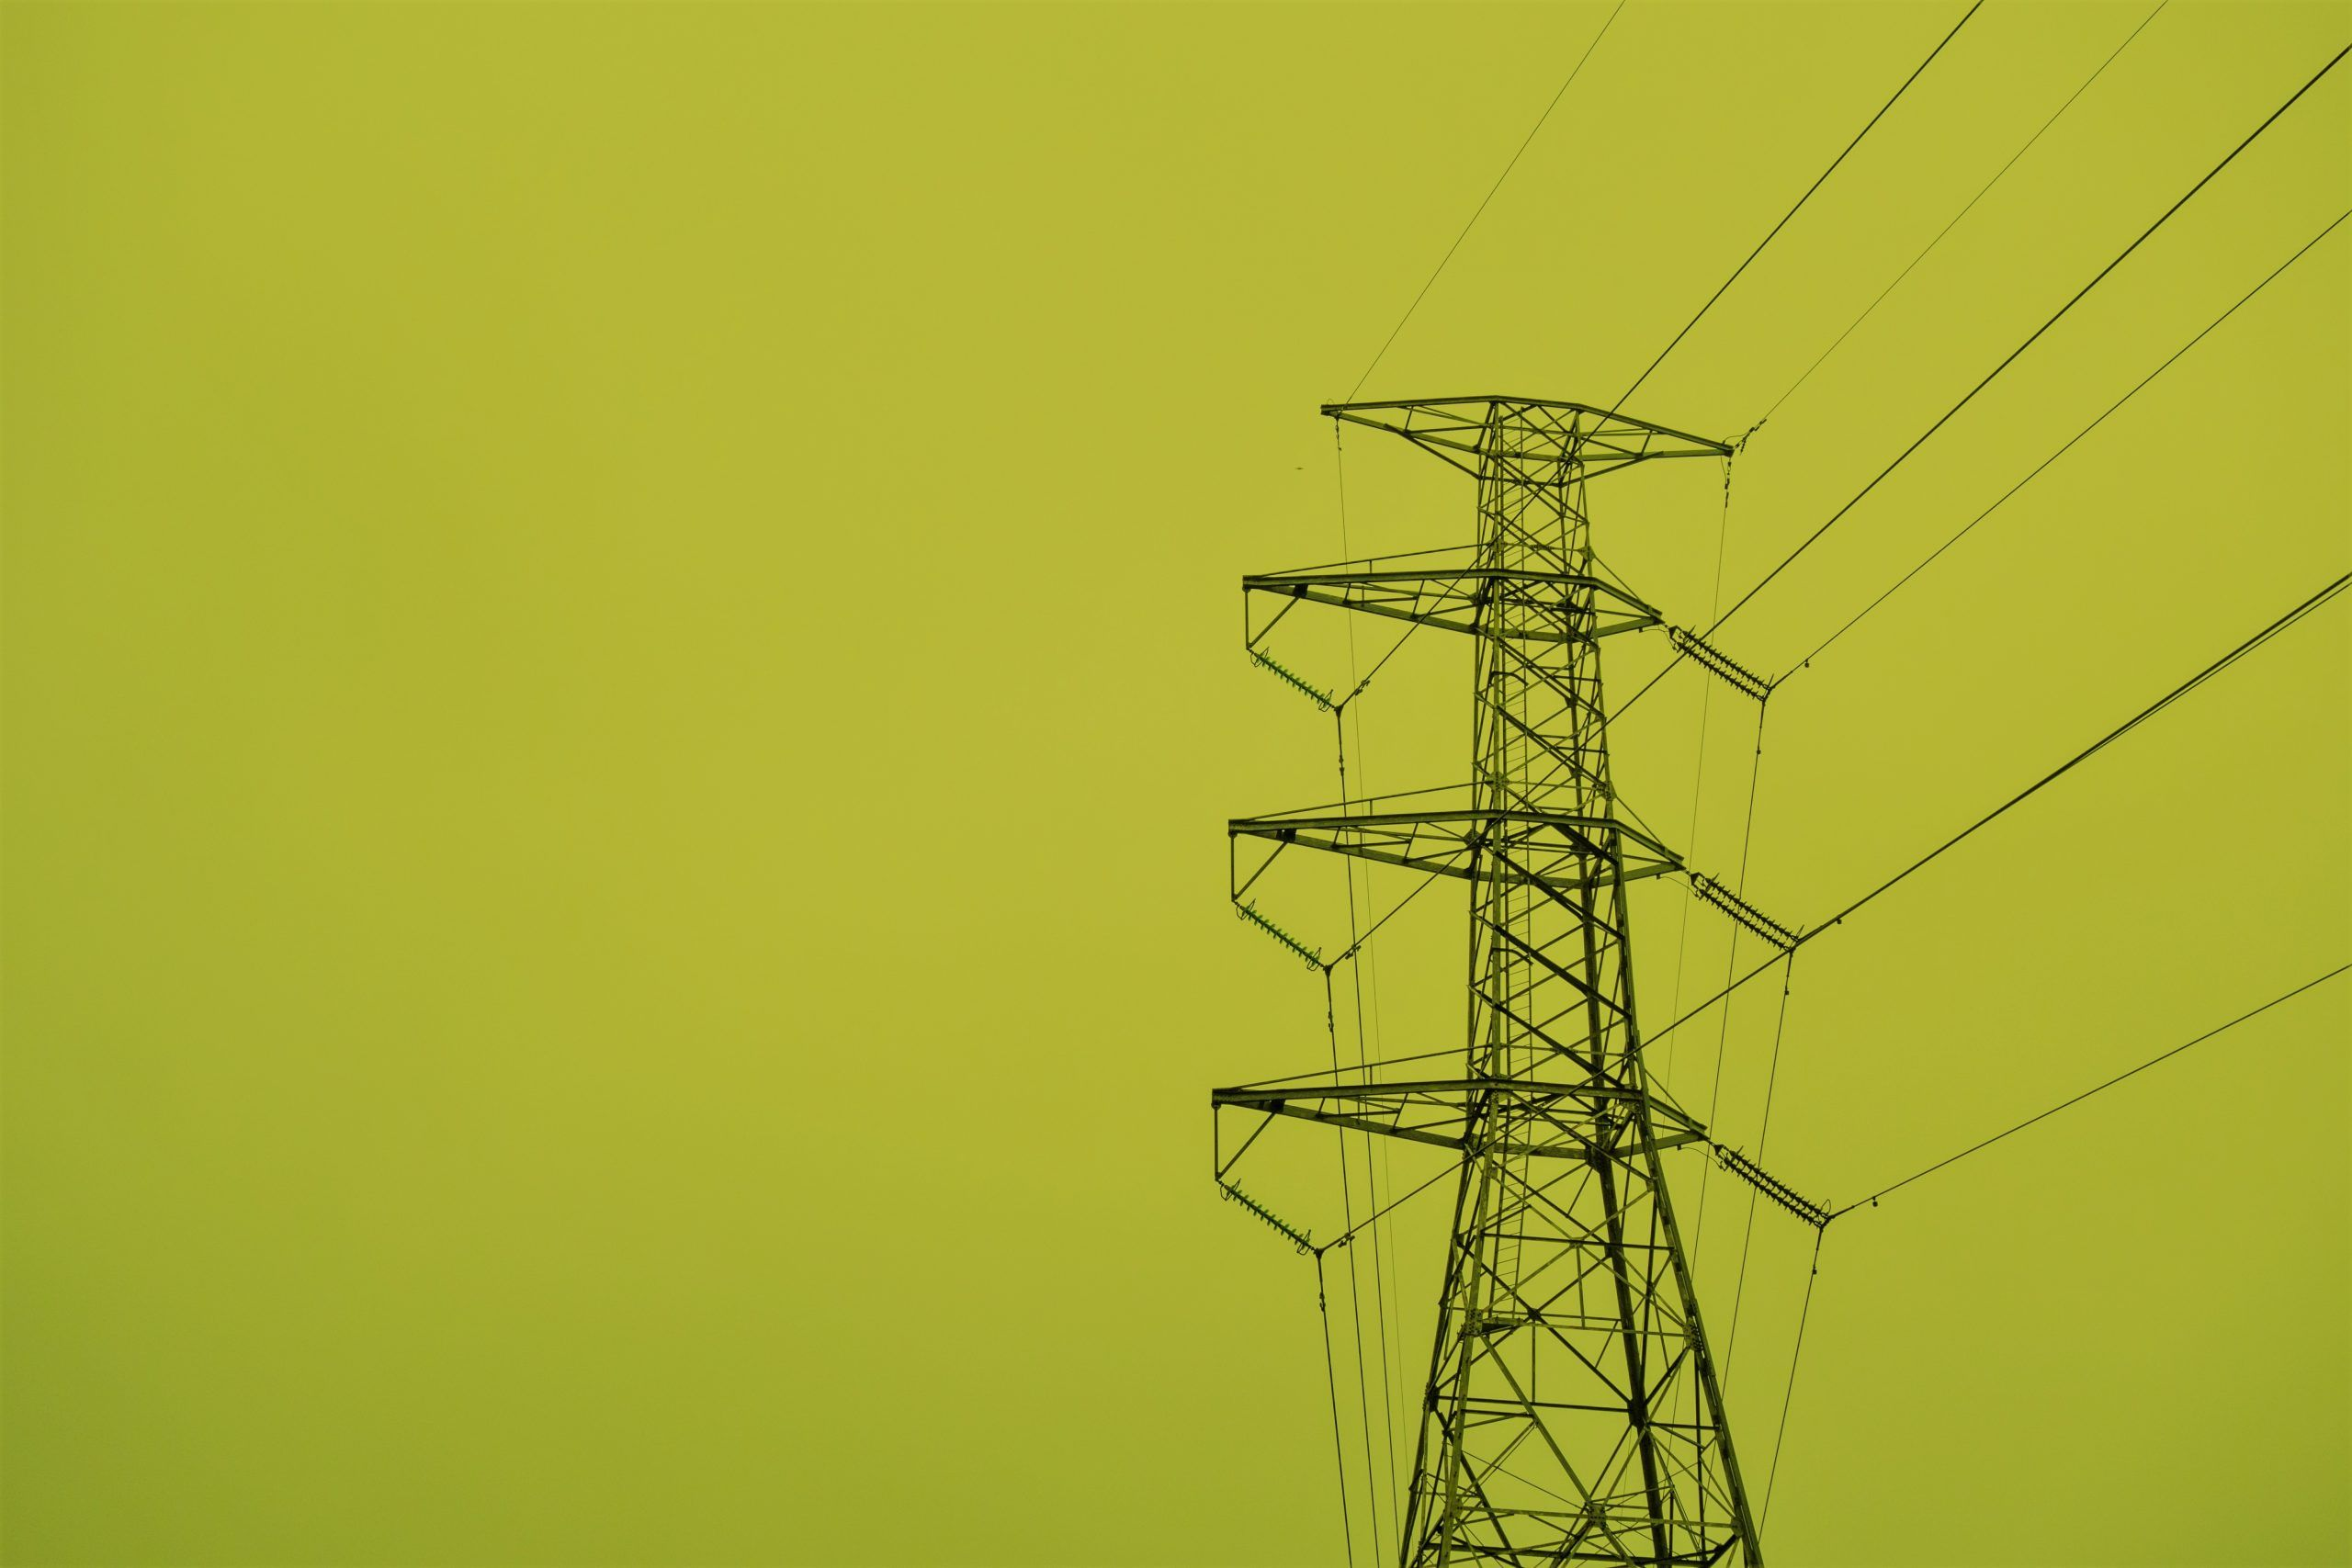 How can I know the hourly electricity consumption of my home or company?